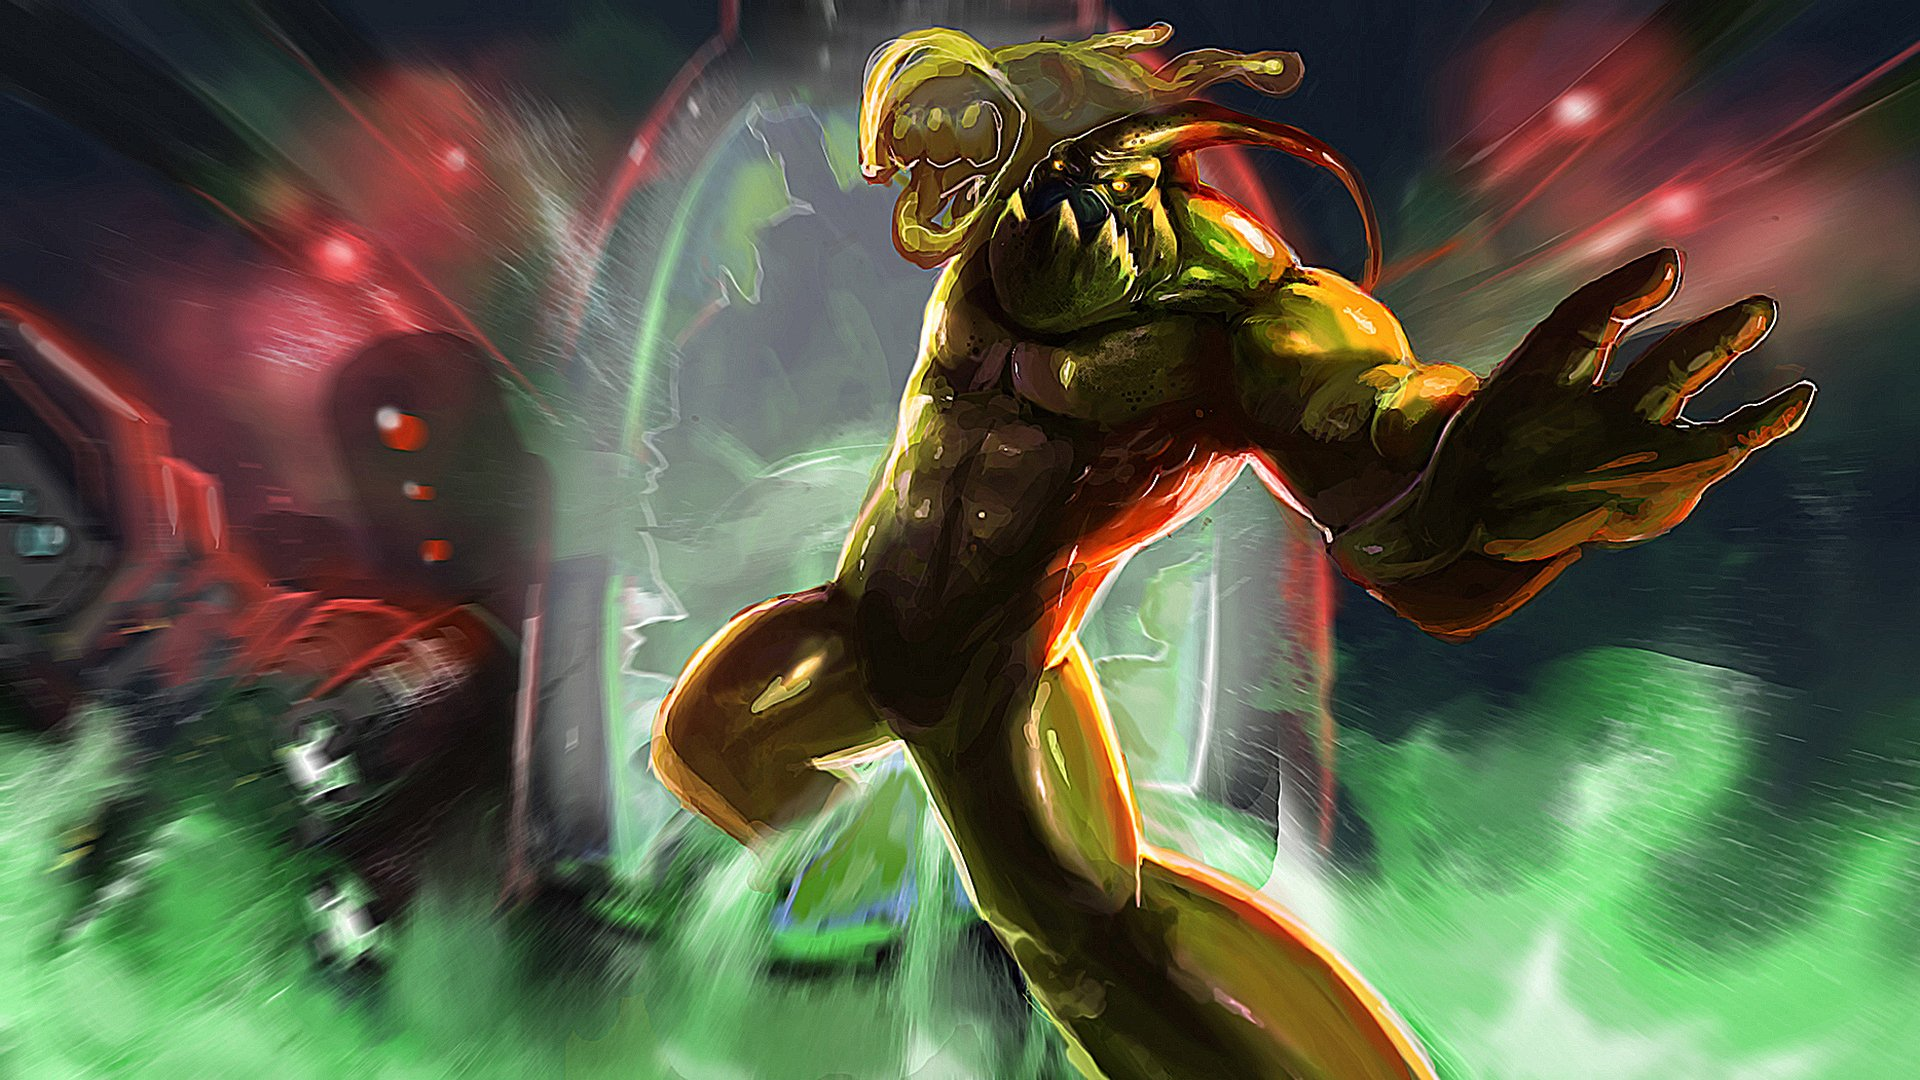 17 Zac League Of Legends Hd Wallpapers Background Images